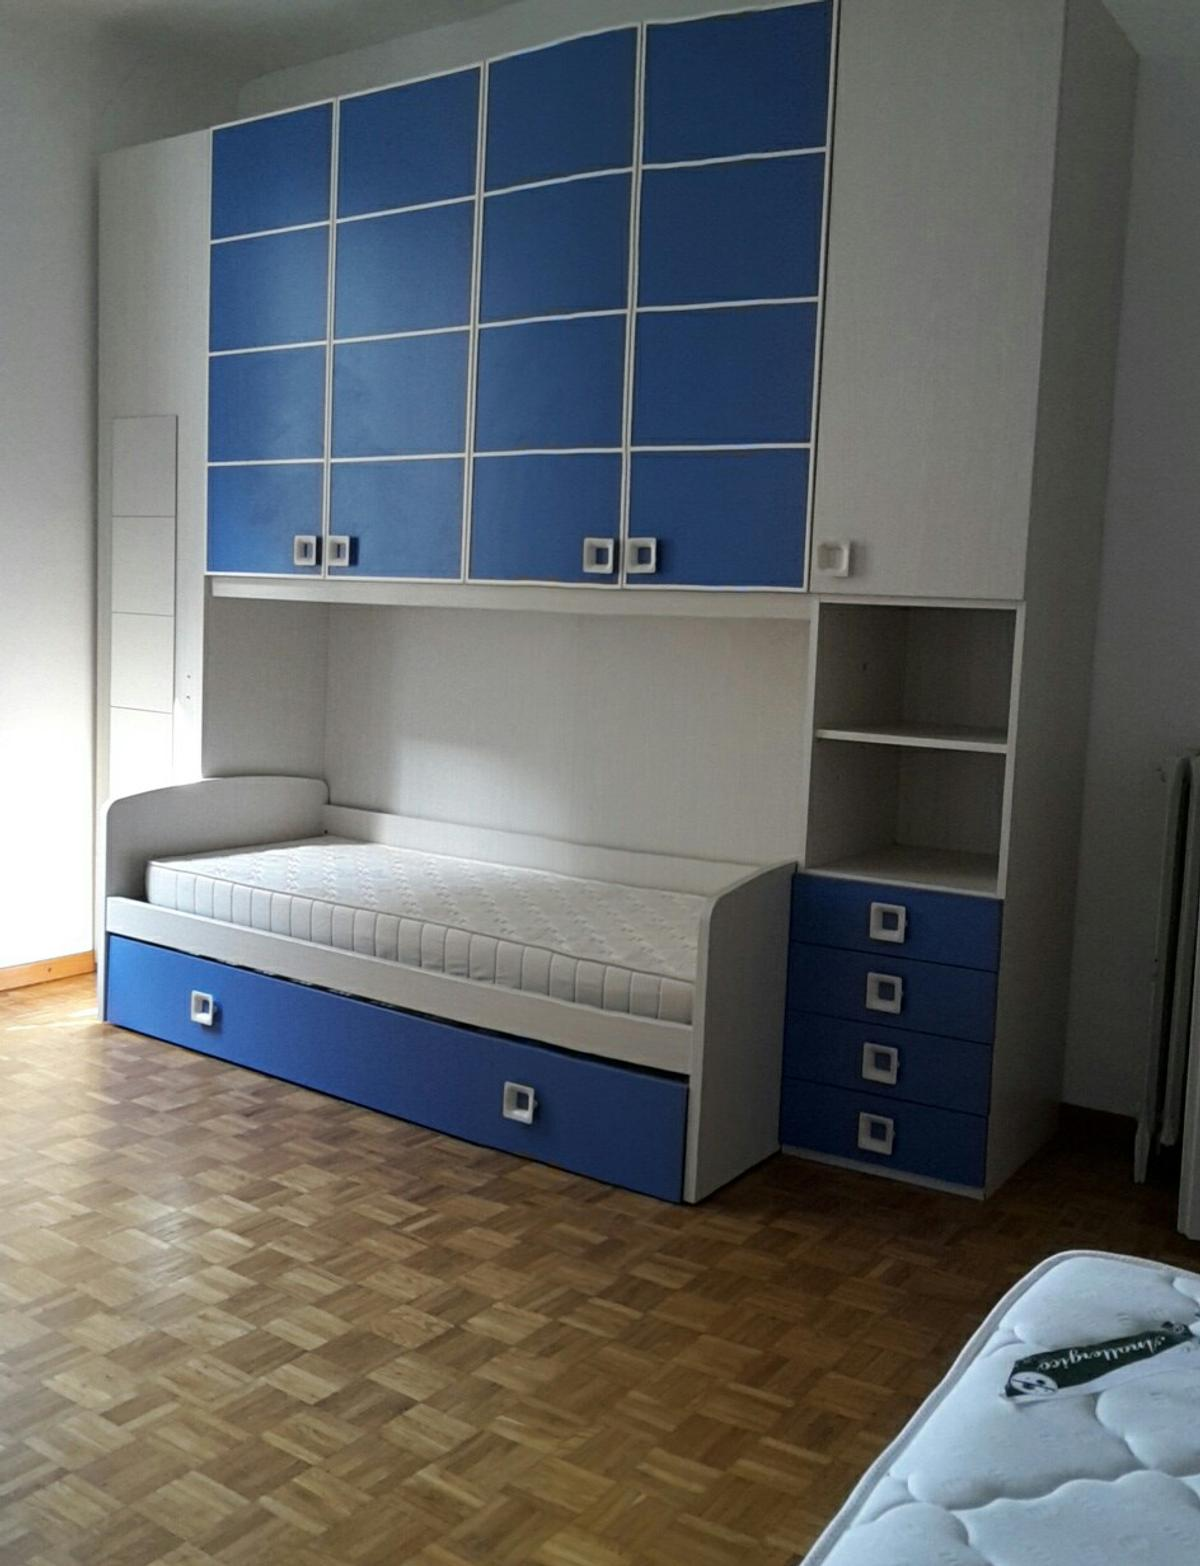 Armadio A Ponte Senza Letto.Armadio A Ponte In 20129 Milano For 250 00 For Sale Shpock